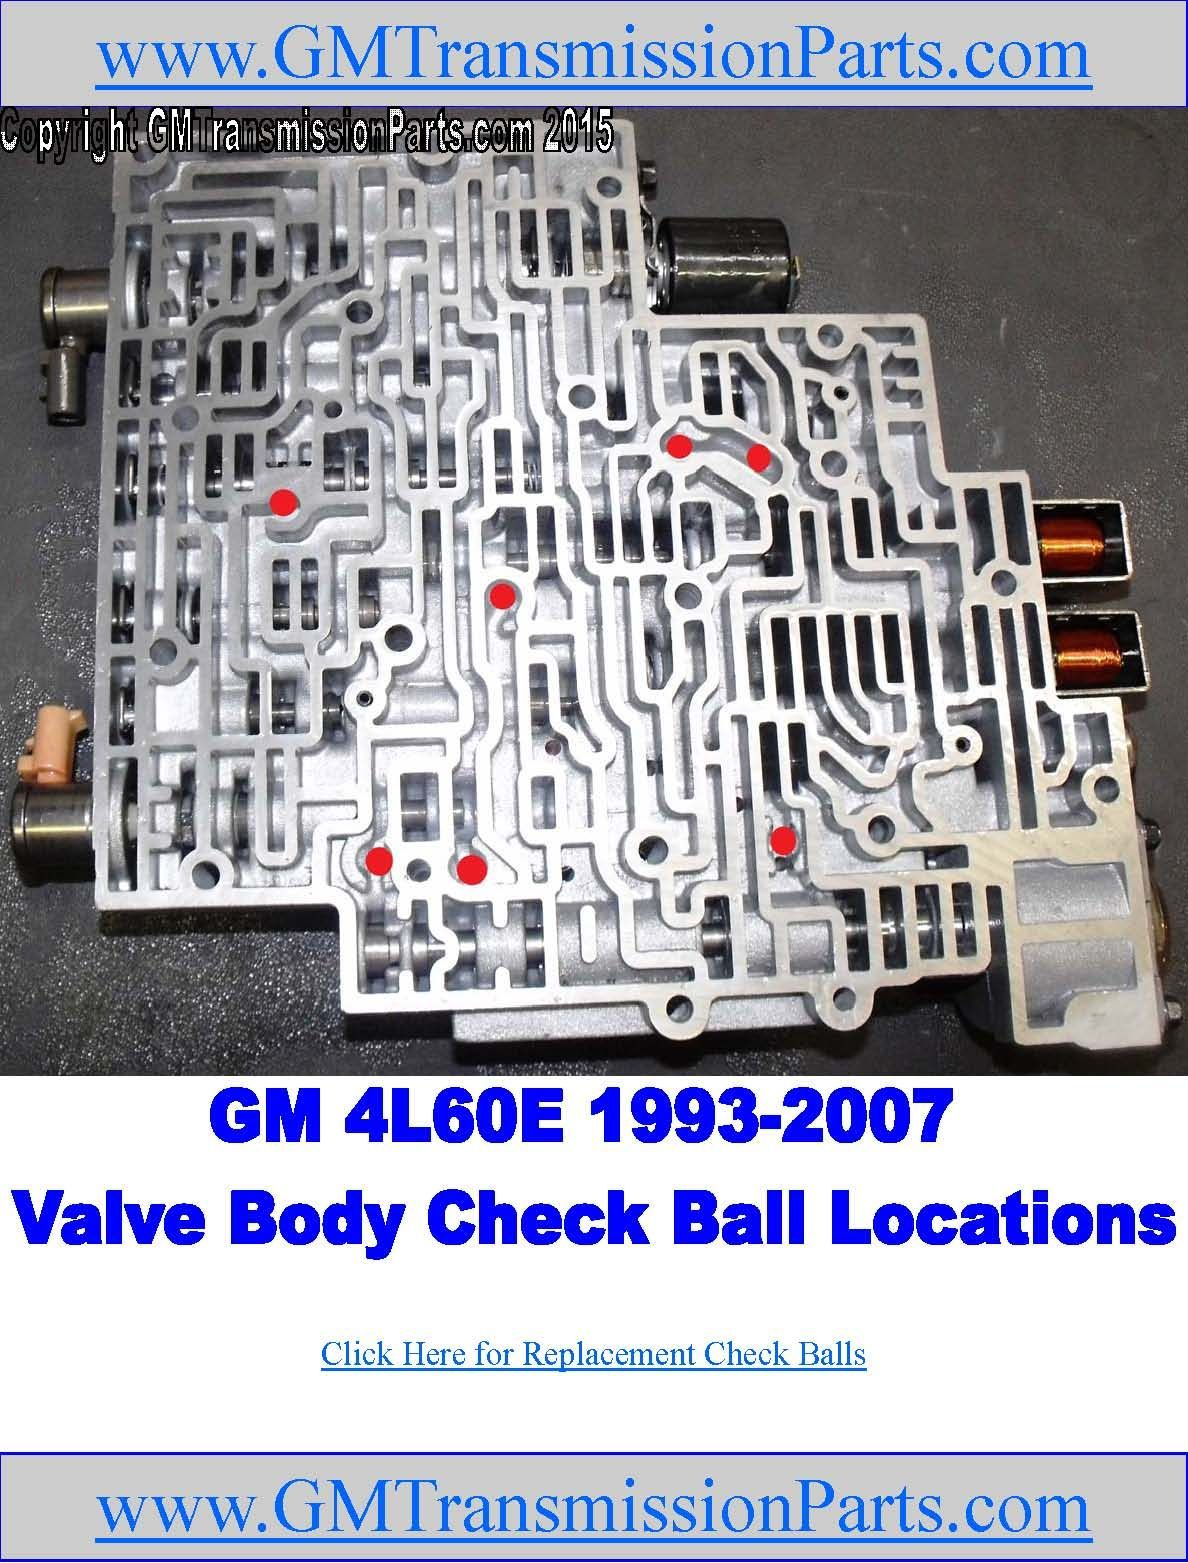 Check Ball Locations In Gm S 4l60e Transmission Valve Bodies There Are A Total Of 7 C Transmission Repair 4l60e Transmission Rebuild Transmission Repair Shop